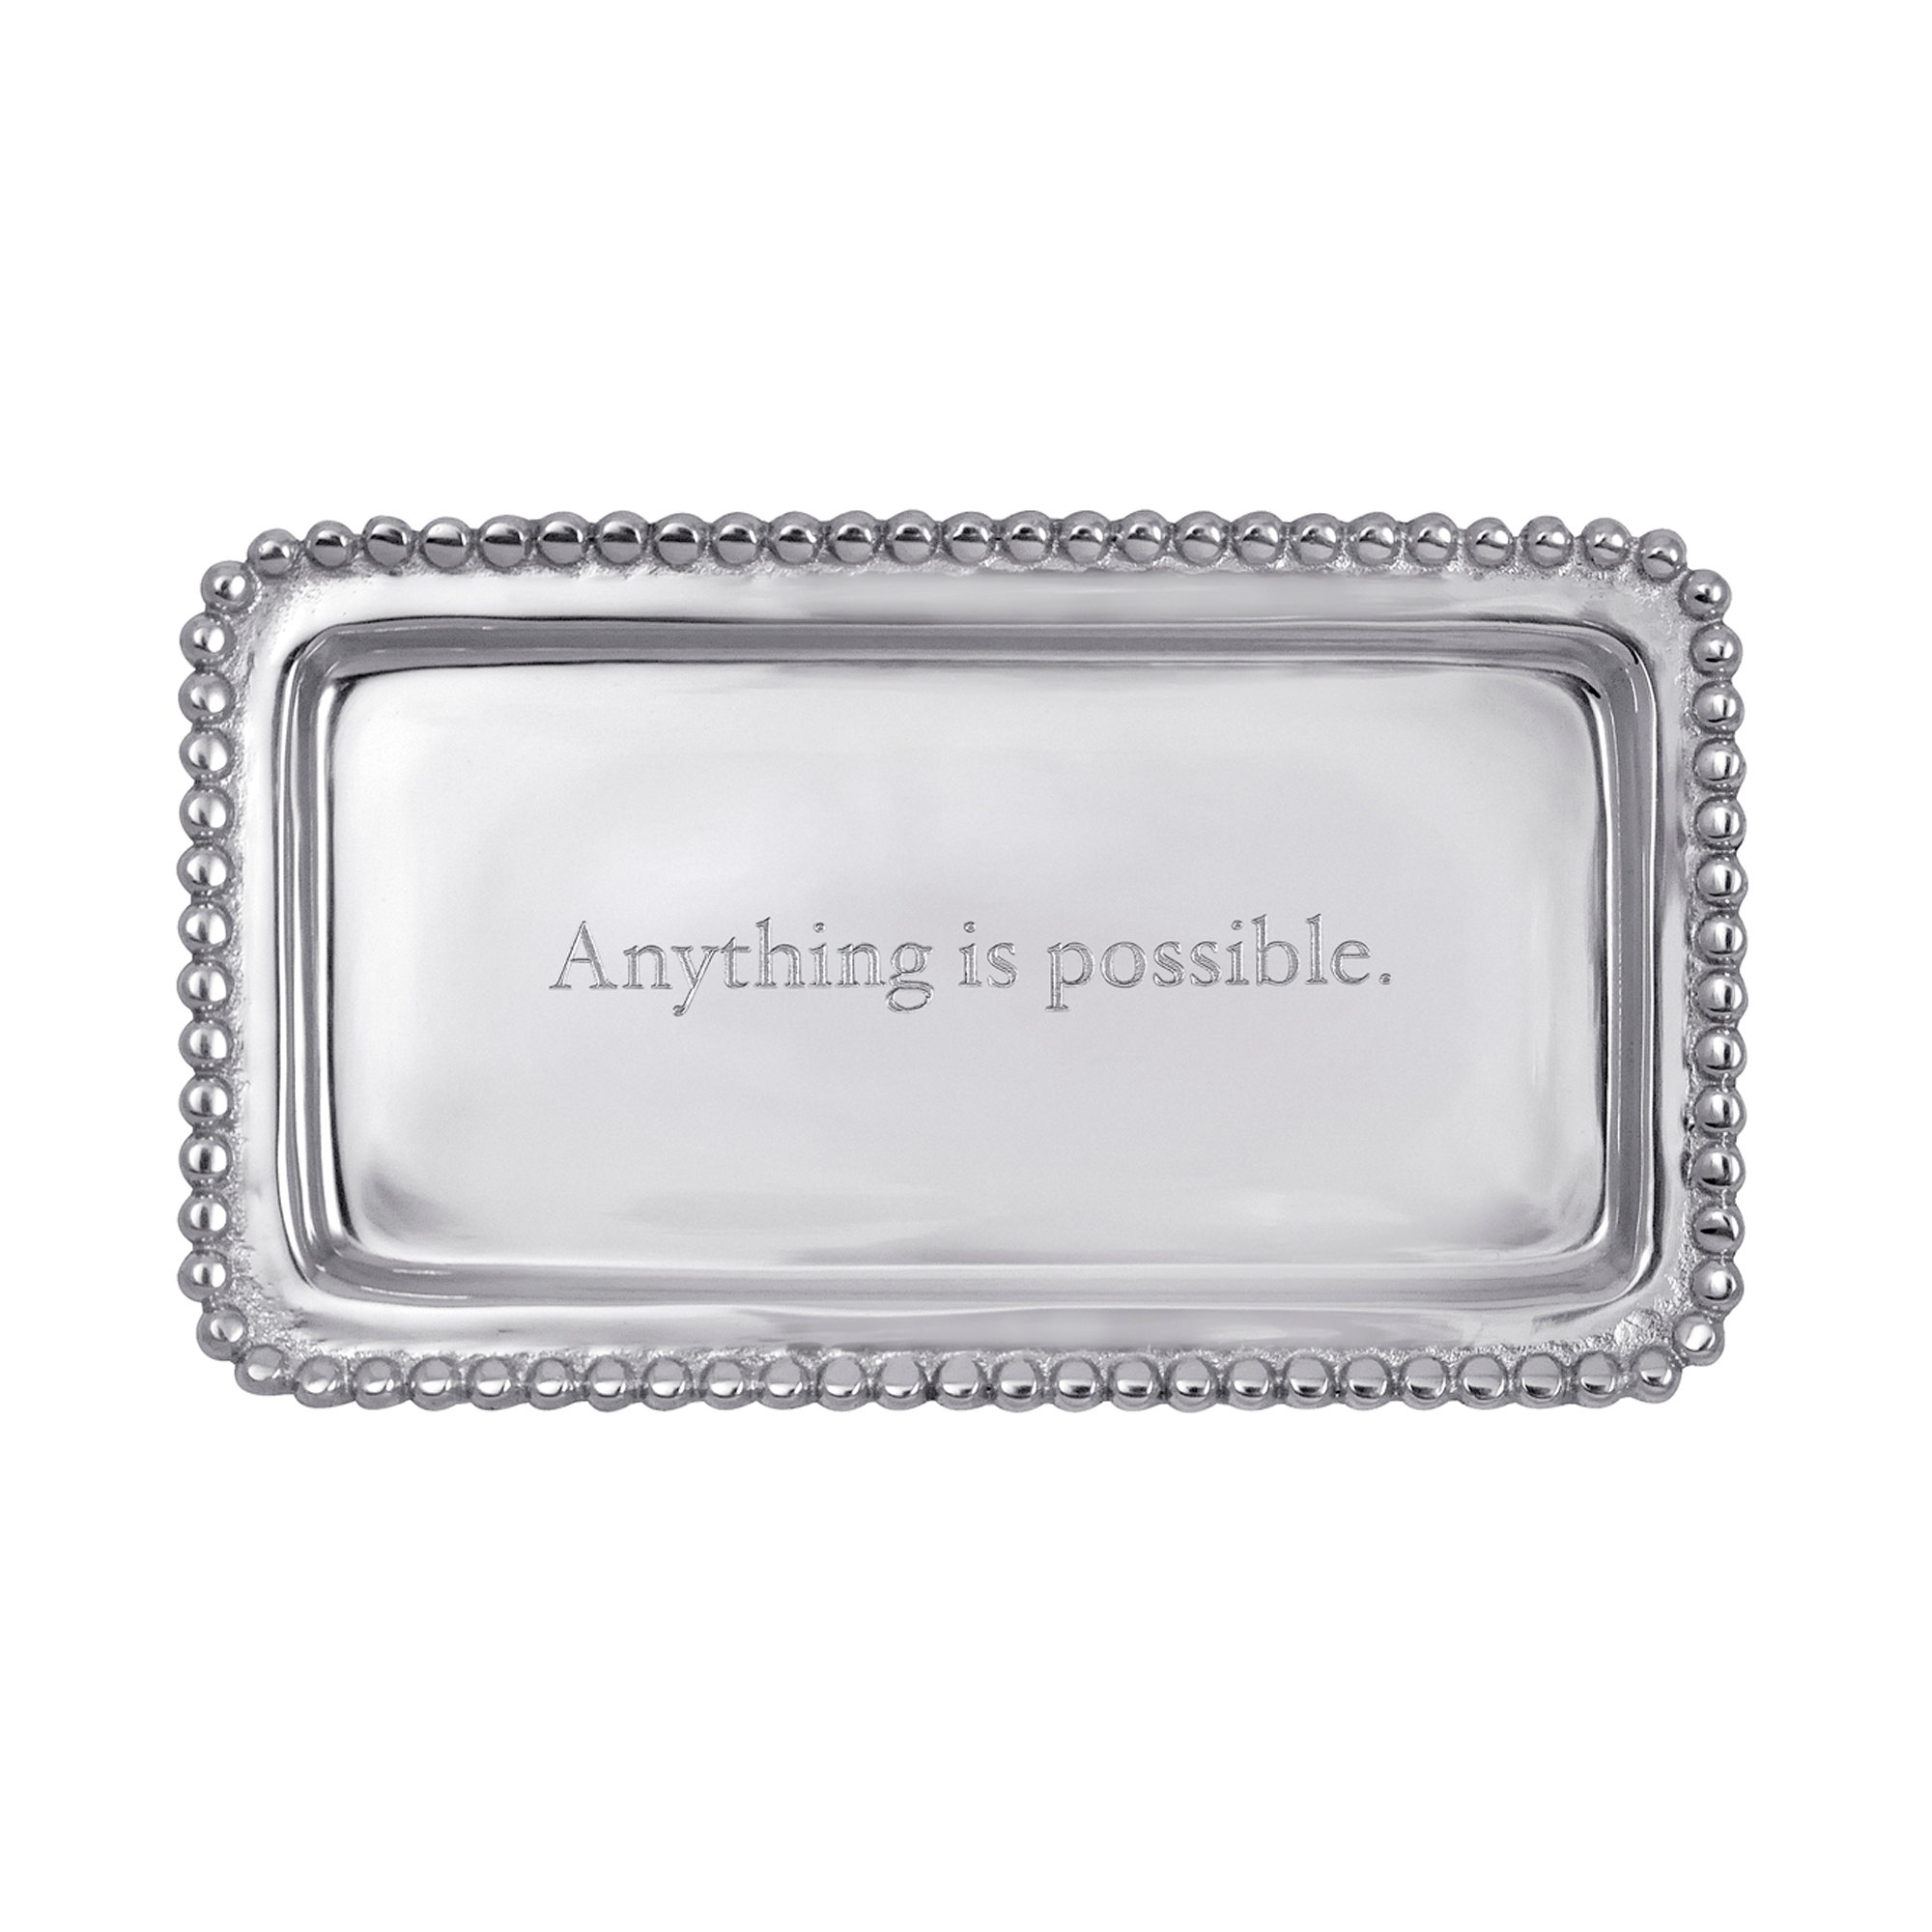 Mariposa Anything Is Possible' Tray